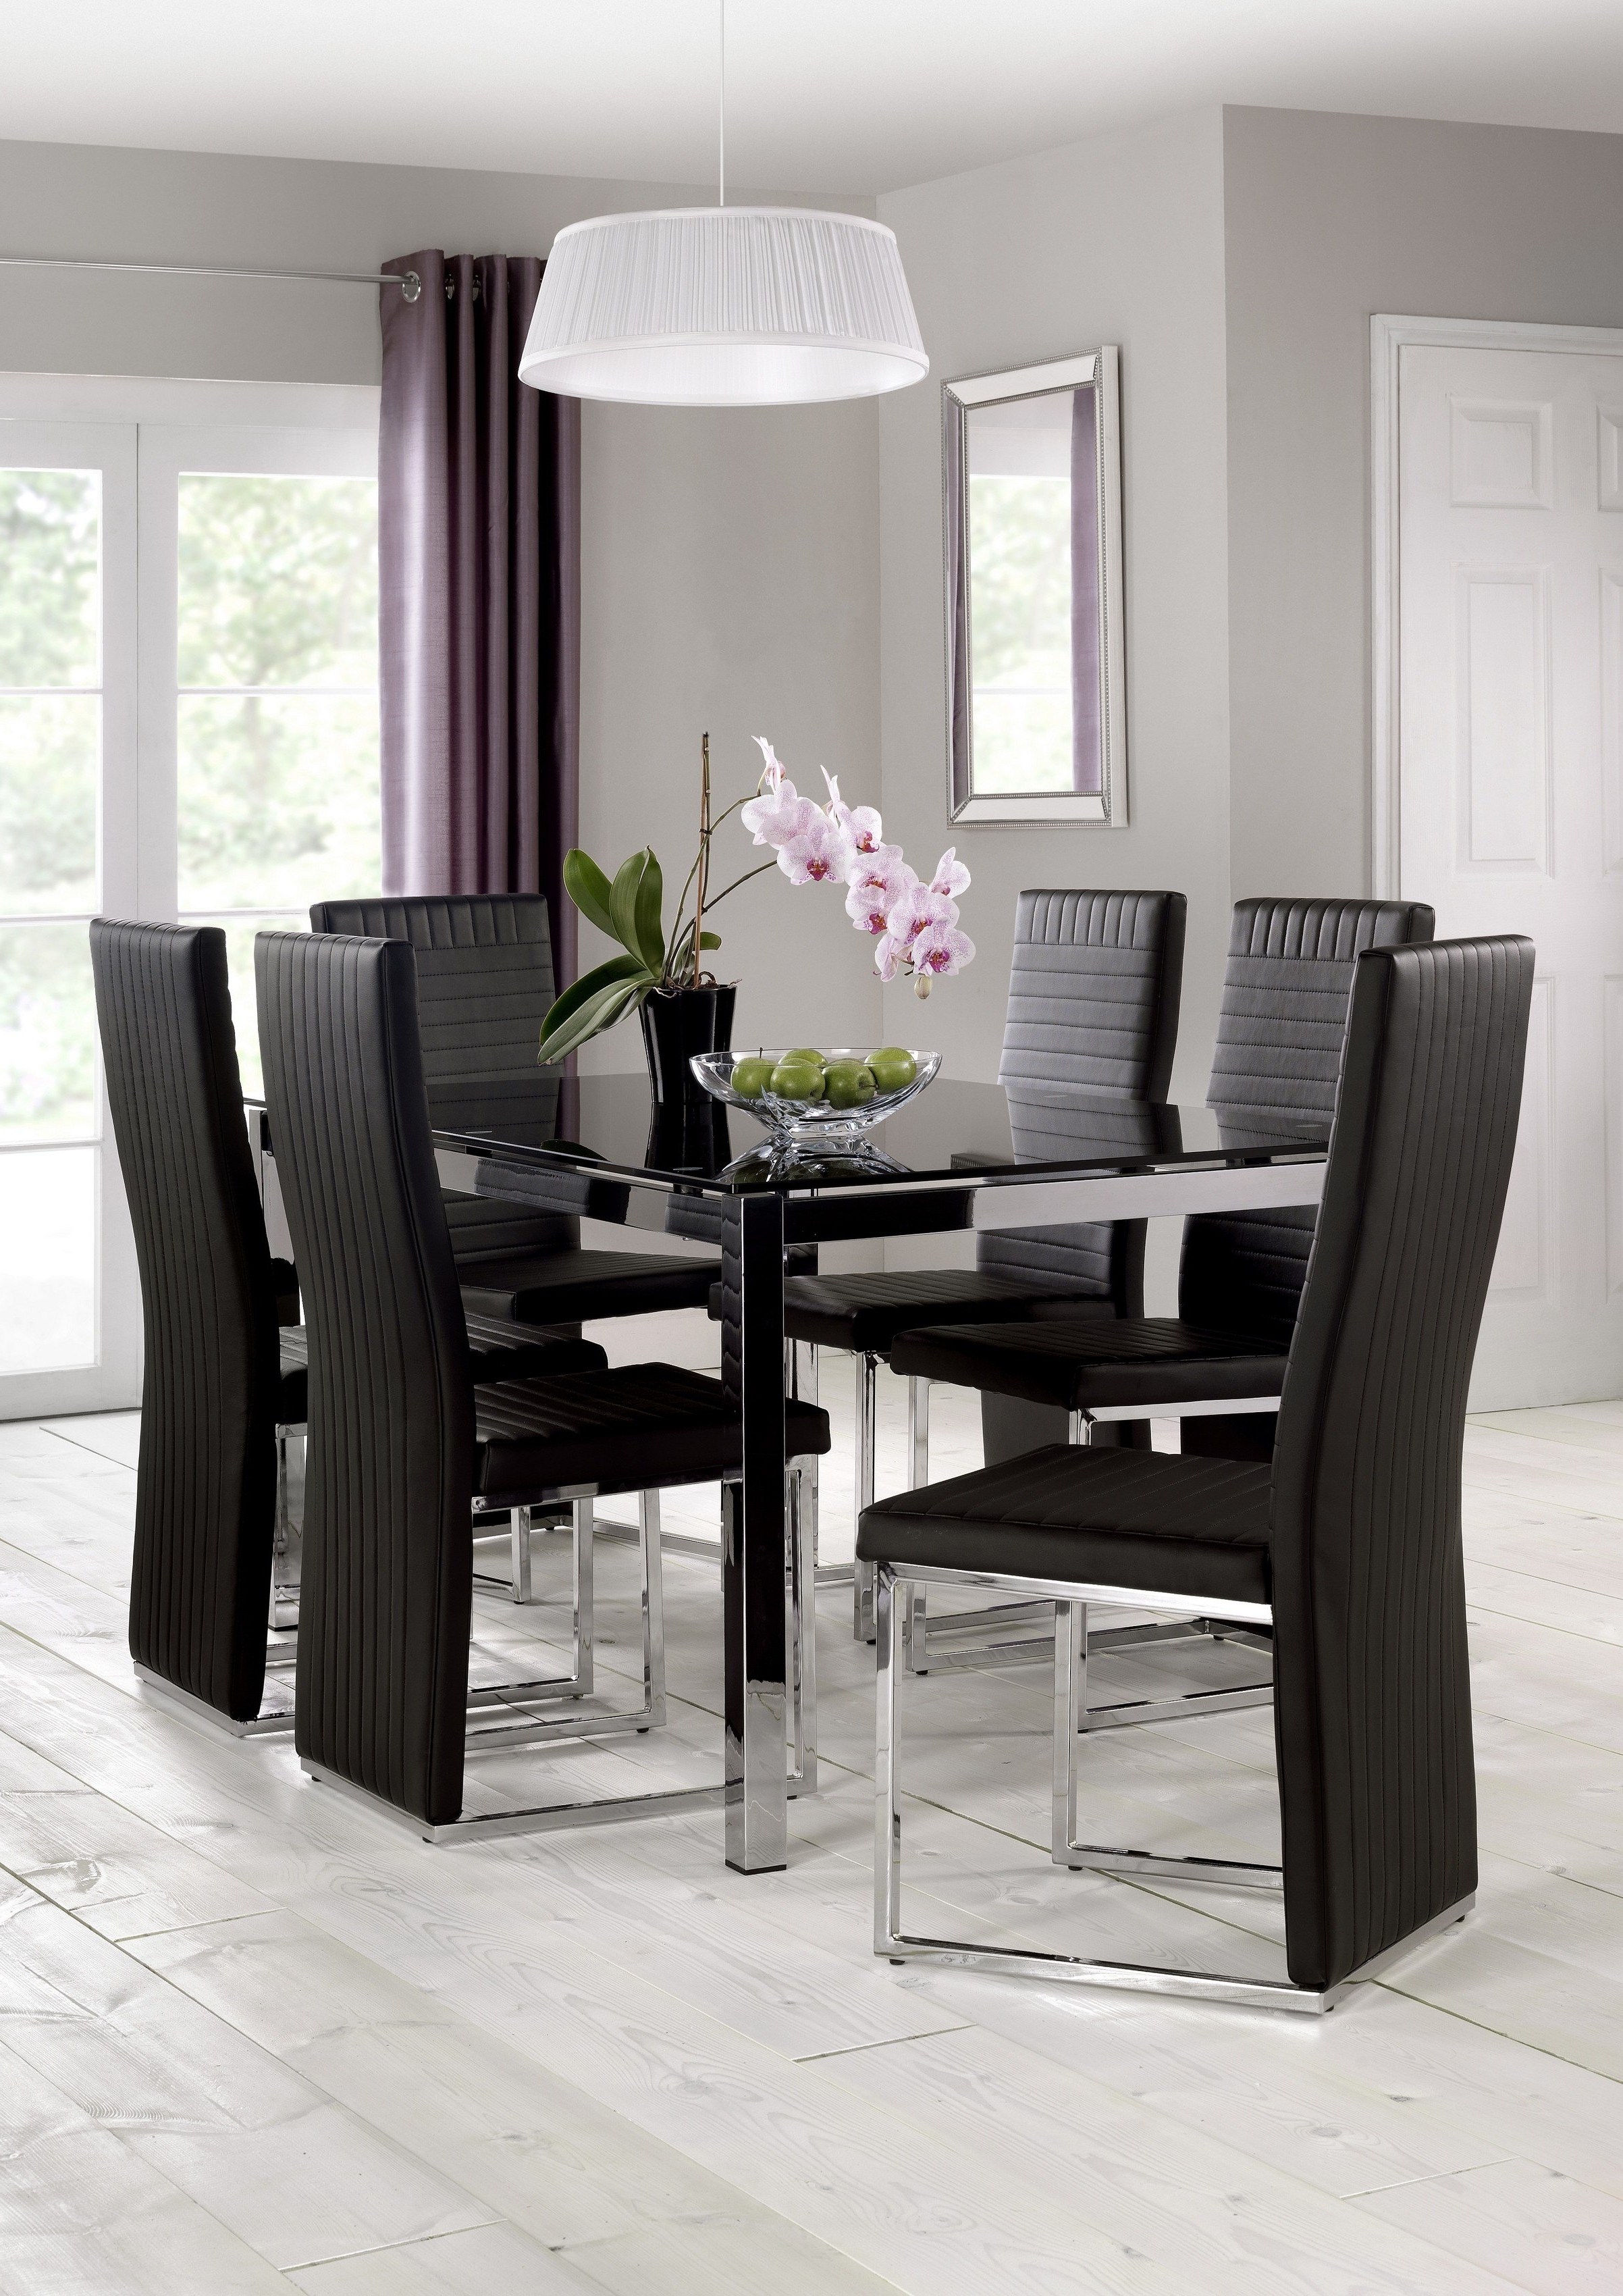 Most Popular Dining Tables Black Glass Within Julian Bowentempo Chrome And Black Glass Dining Table (Gallery 10 of 25)